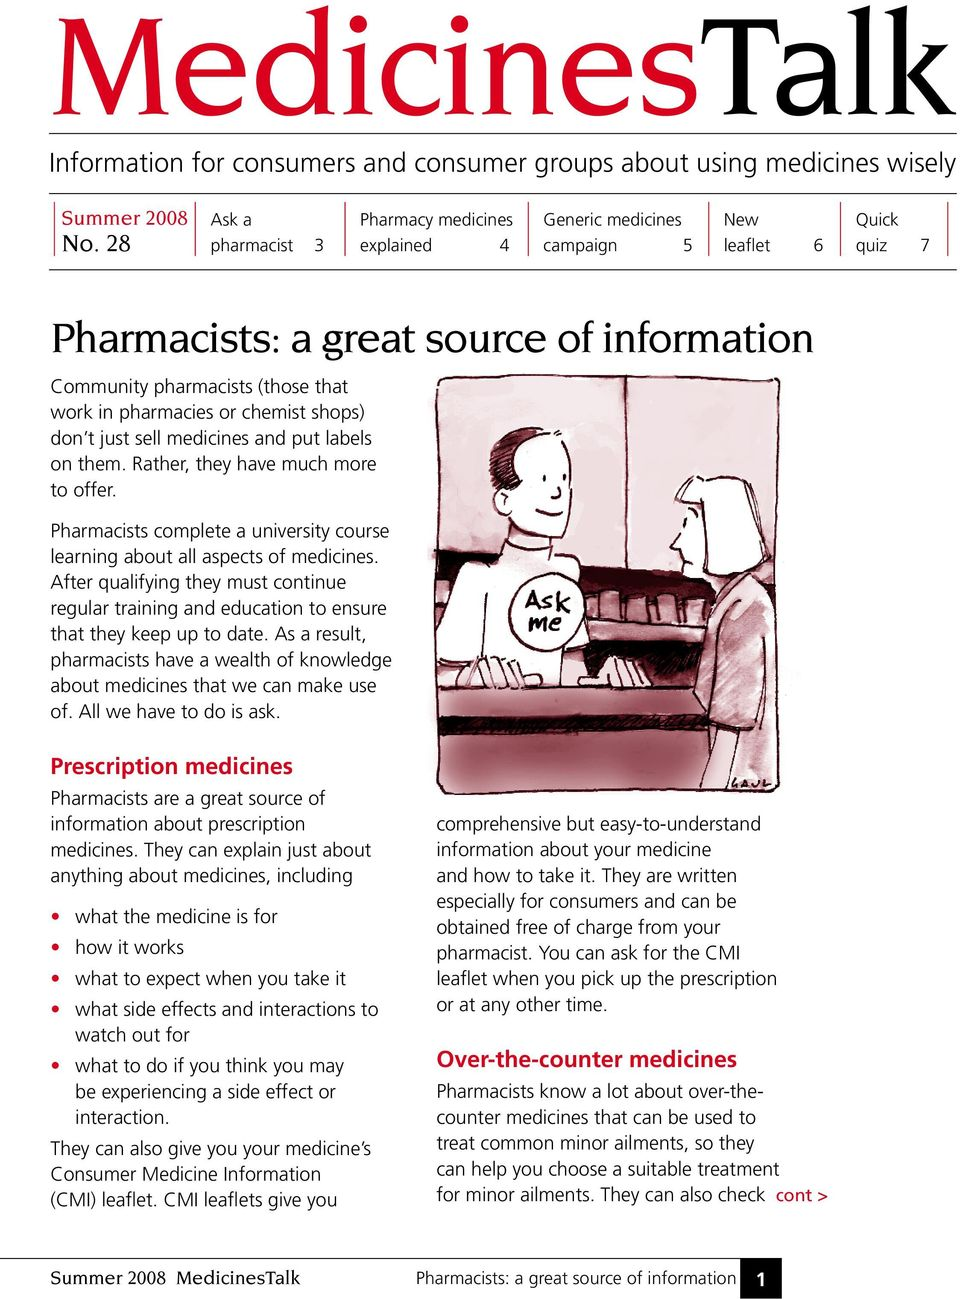 pharmacies or chemist shops) don t just sell medicines and put labels on them. Rather, they have much more to offer. Pharmacists complete a university course learning about all aspects of medicines.